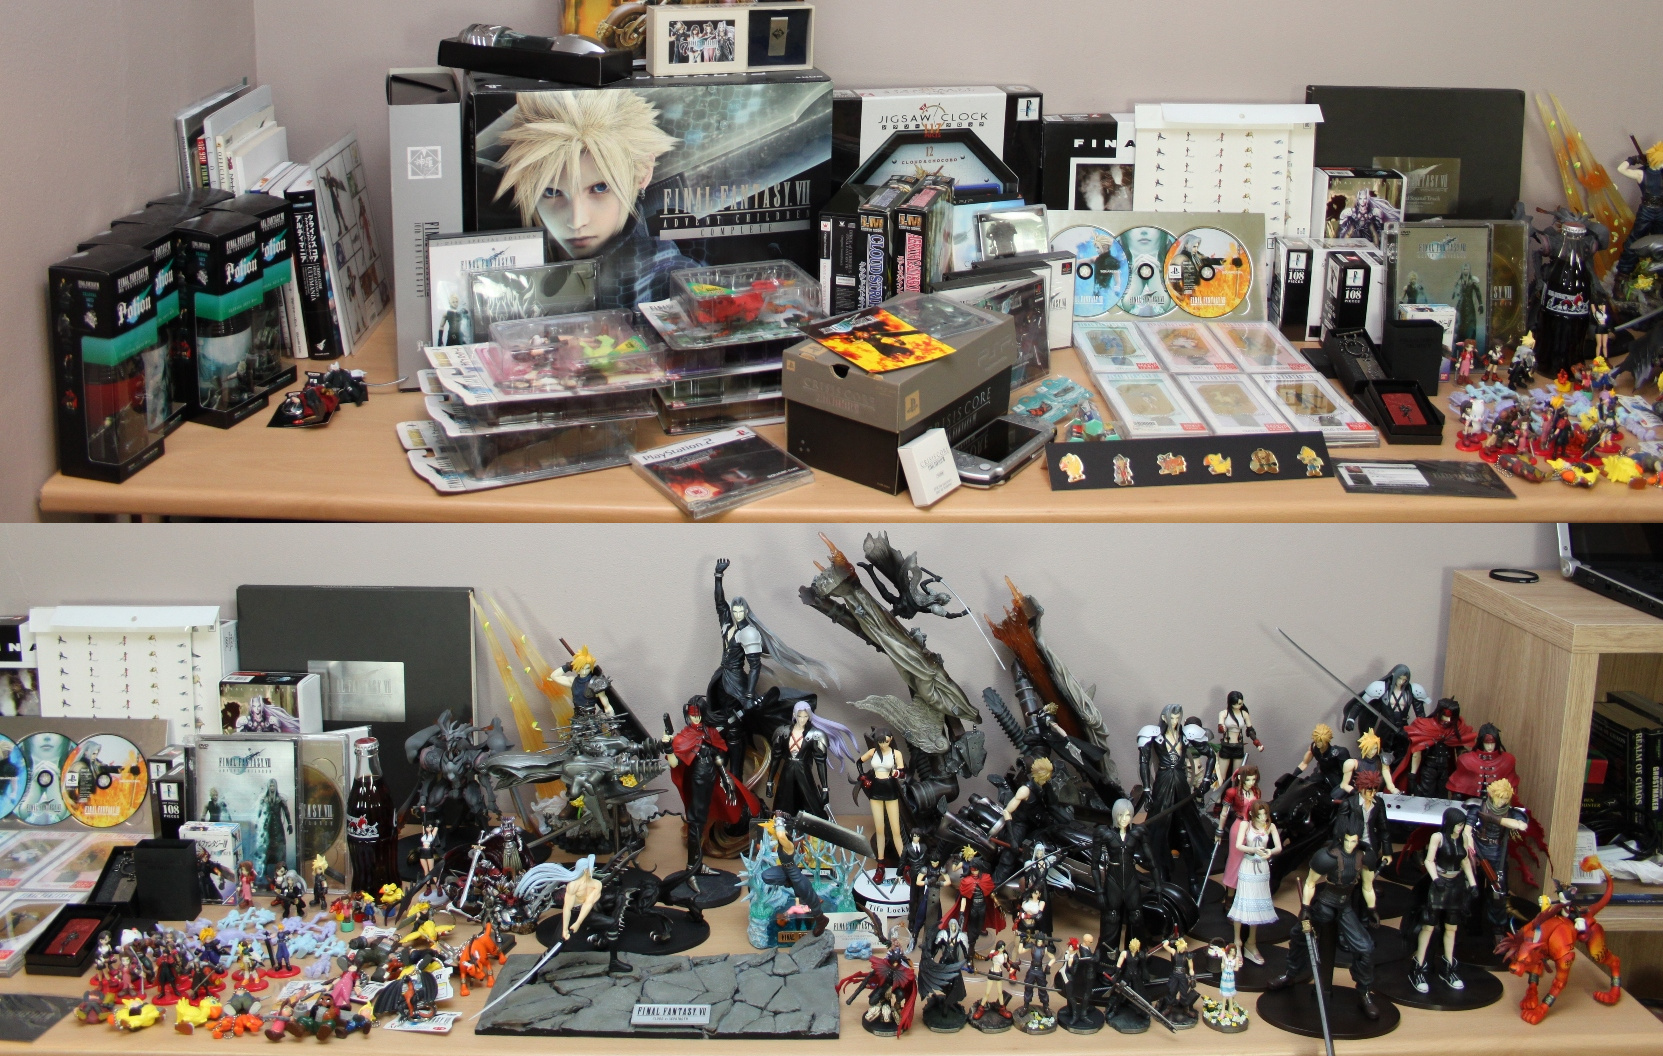 resin final_fantasy metal kotobukiya square_enix play_arts trading_arts collection sephiroth trading_arts_mini fenrir bandai cloud_strife final_fantasy_vii vincent_valentine goods static_arts ooparts aerith_gainsborough reno zack_fair cold_cast tifa_lockhart sculpture_arts polystone yuffie_kisaragi red_xiii cait_sith suntory sierra square lighter final_fantasy_vii:_advent_children final_fantasy_vii:_crisis_core final_fantasy_vii:_before_crisis rude final_fantasy_vii:_dirge_of_cerberus digicube die_cast coca_cola_x_squaresoft kadaj nomura_tetsuya knights_of_the_round barret_wallace pass_case bahamut_shin amano_shiro final_fantasy_-_trading_arts_mini_vol._4 shadow_creeper uematsu_nobuo taniguchi_jun'ichi safer_sephiroth takeya_takayuki blu-ray final_fantasy_heroines coca-cola_x_squaresoft final_fantasy_master_creatures_2 zippo_manufacturing_company final_fantasy_creatures_archive_-chromium- coca-cola final_fantasy_trading_arts_mini_vol._3 crisis_core:_final_fantasy_vii dirge_of_cerberus:_final_fantasy_vii before_crisis:_final_fantasy_vii final_fantasy_vii_potion_with_trading_arts_mini taniguchi_junichi